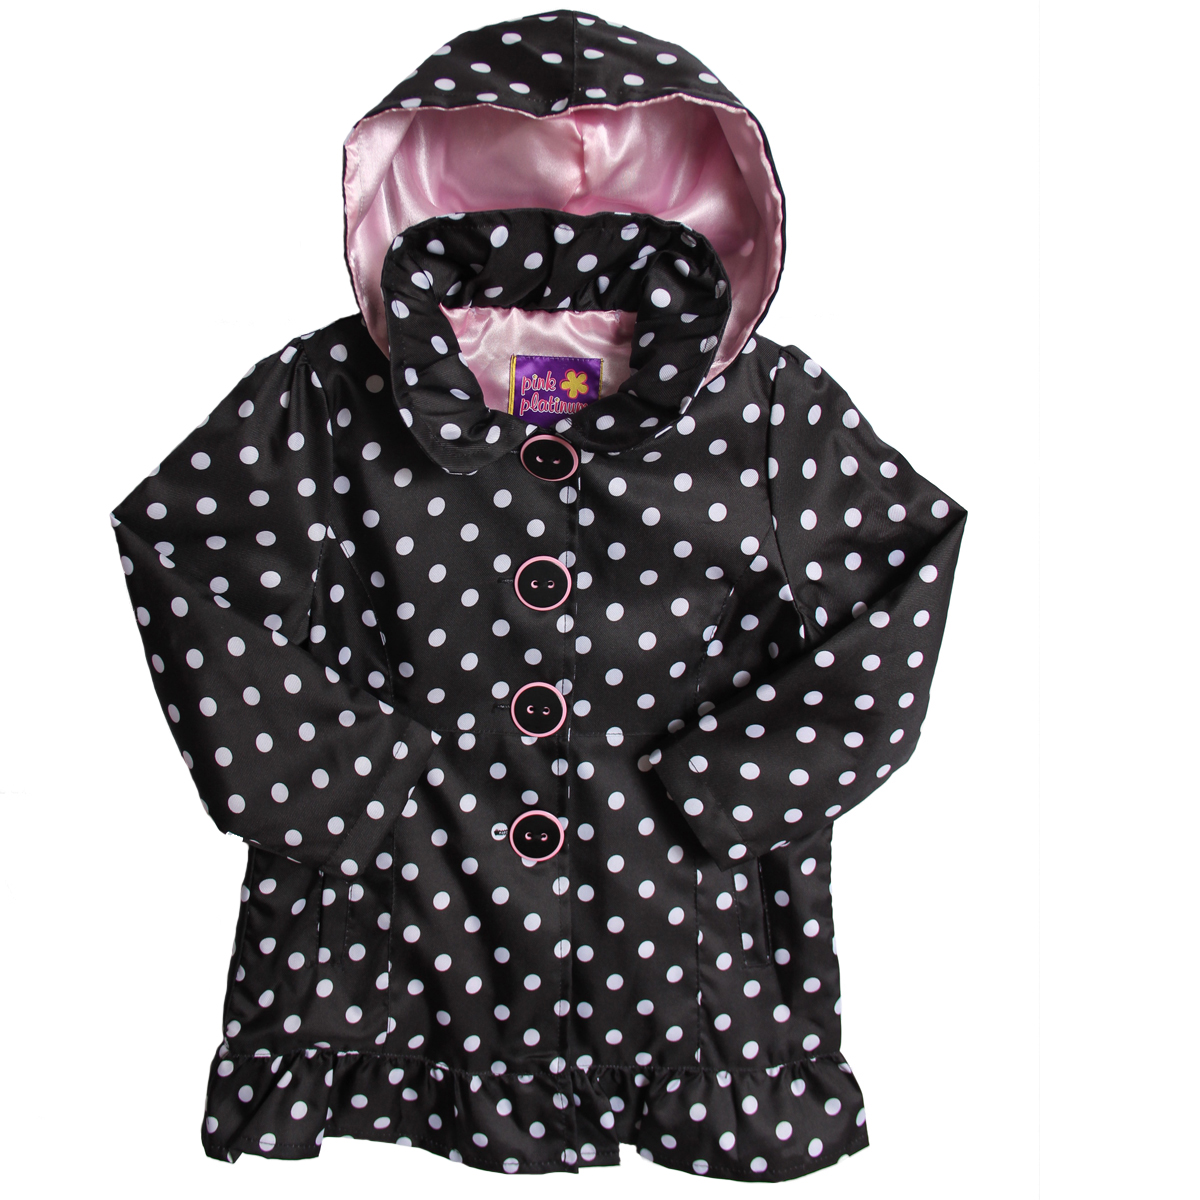 Pink Platinum Kid Girls Black White Polka Dot Hooded Raincoat Spring Jacket at Sears.com